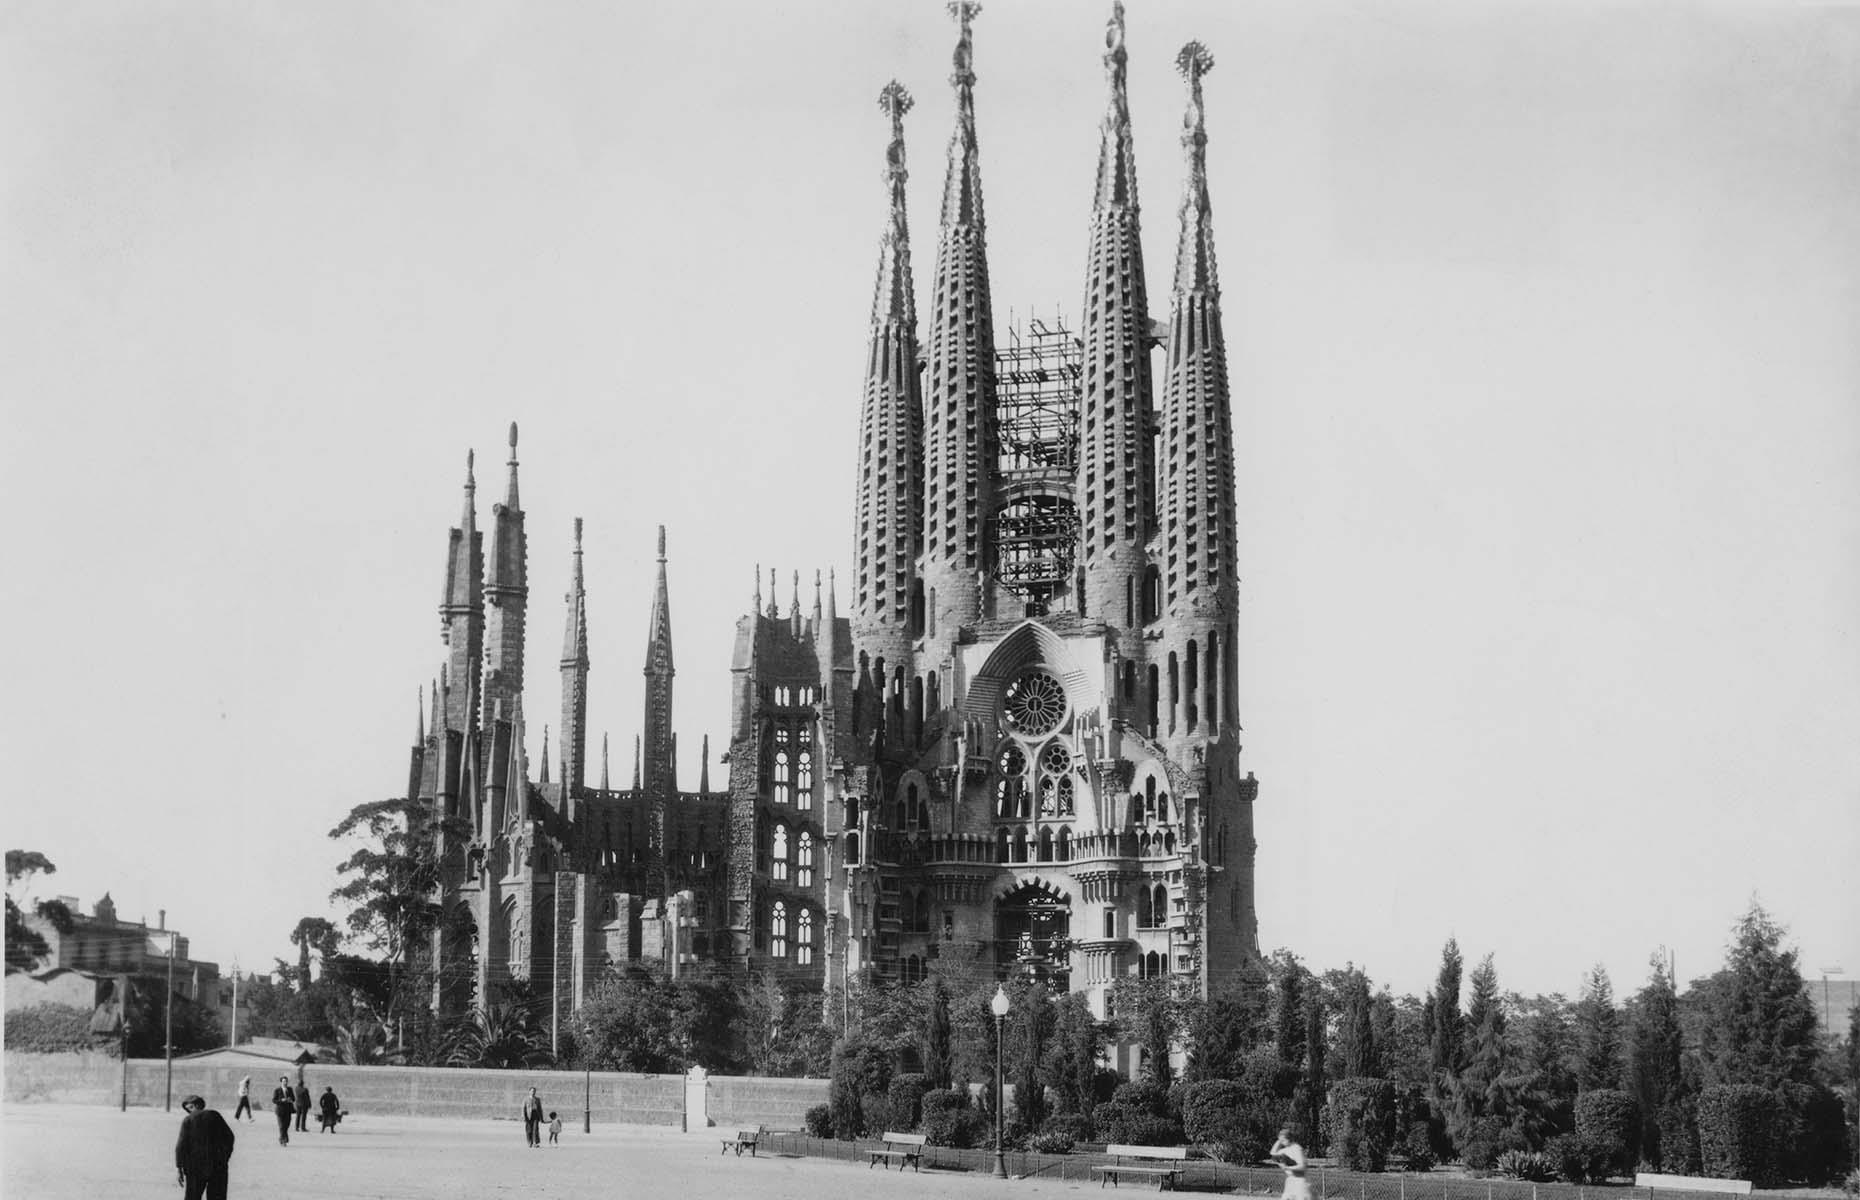 Slide 26 of 27: No work by legendary architect Antoni Gaudí is more famous or impressive than his plan for Sagrada Familia. Work on the landmark began in 1882 (originally under the watch of Spanish architect Francisco de Paula del Villar) and it's pictured here some 60 years later, circa 1940.